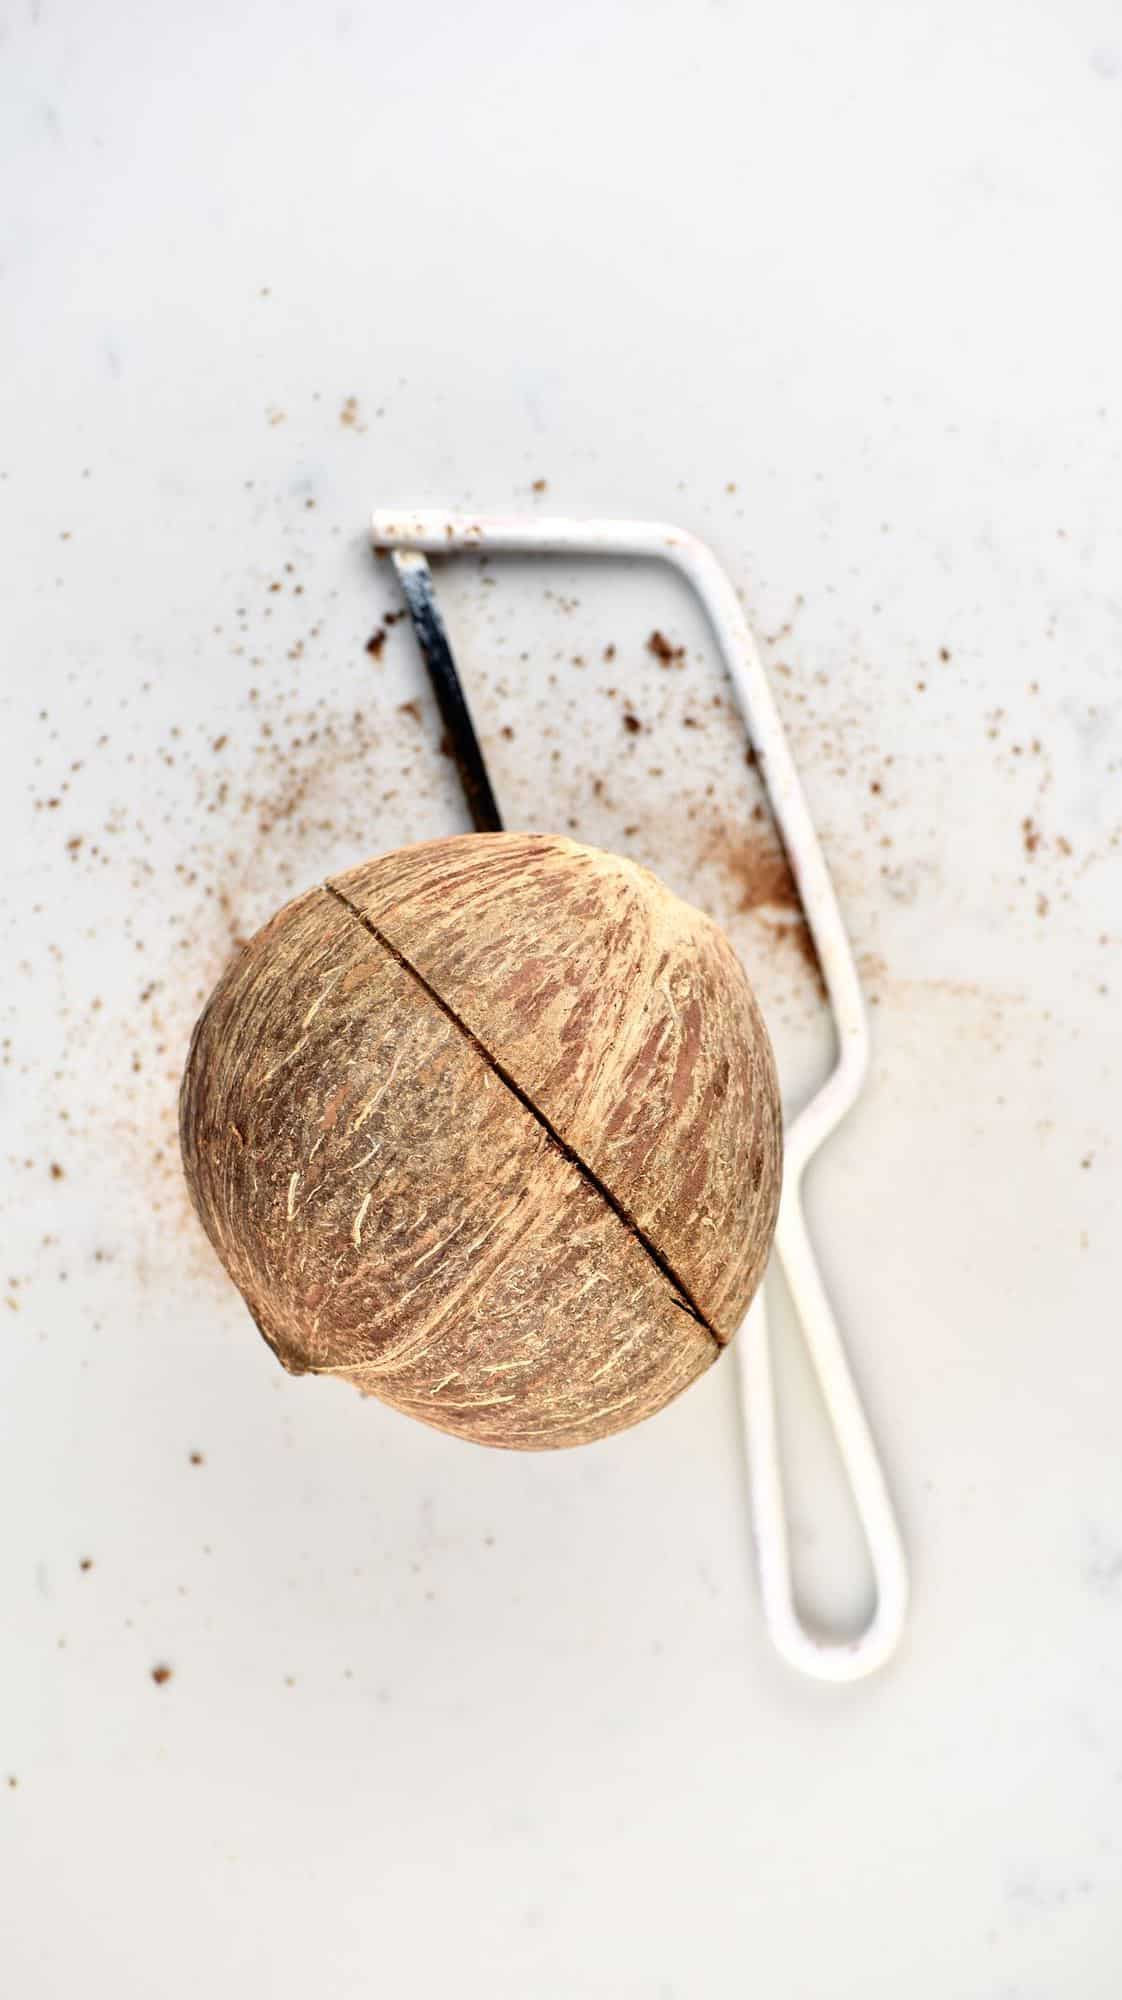 A coconut cut through the middle and a saw next to it on a flat white surface